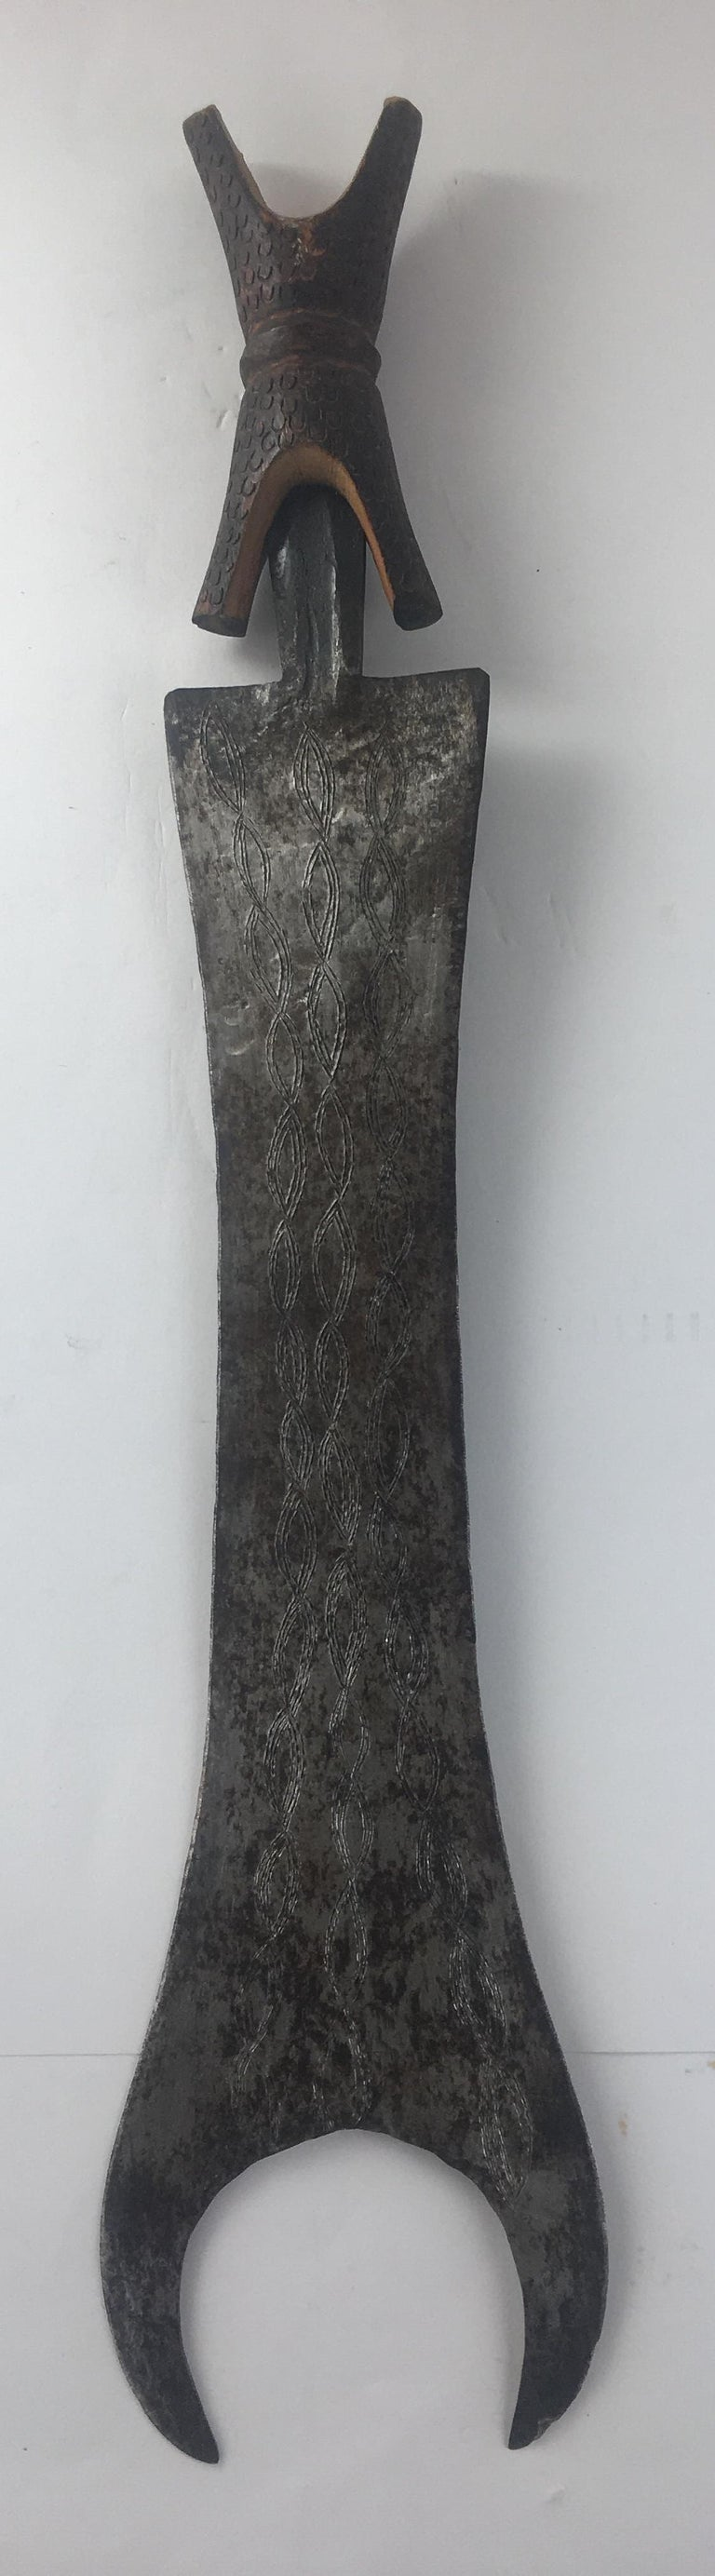 African ceremonial sword from the democratic Republic of Congo, circa 1920s. Iron and wood, in a case made of cloth and animal skin.  This status symbol tribal sword is carried is a single edged, iron blade engraved with elaborate patterns on both